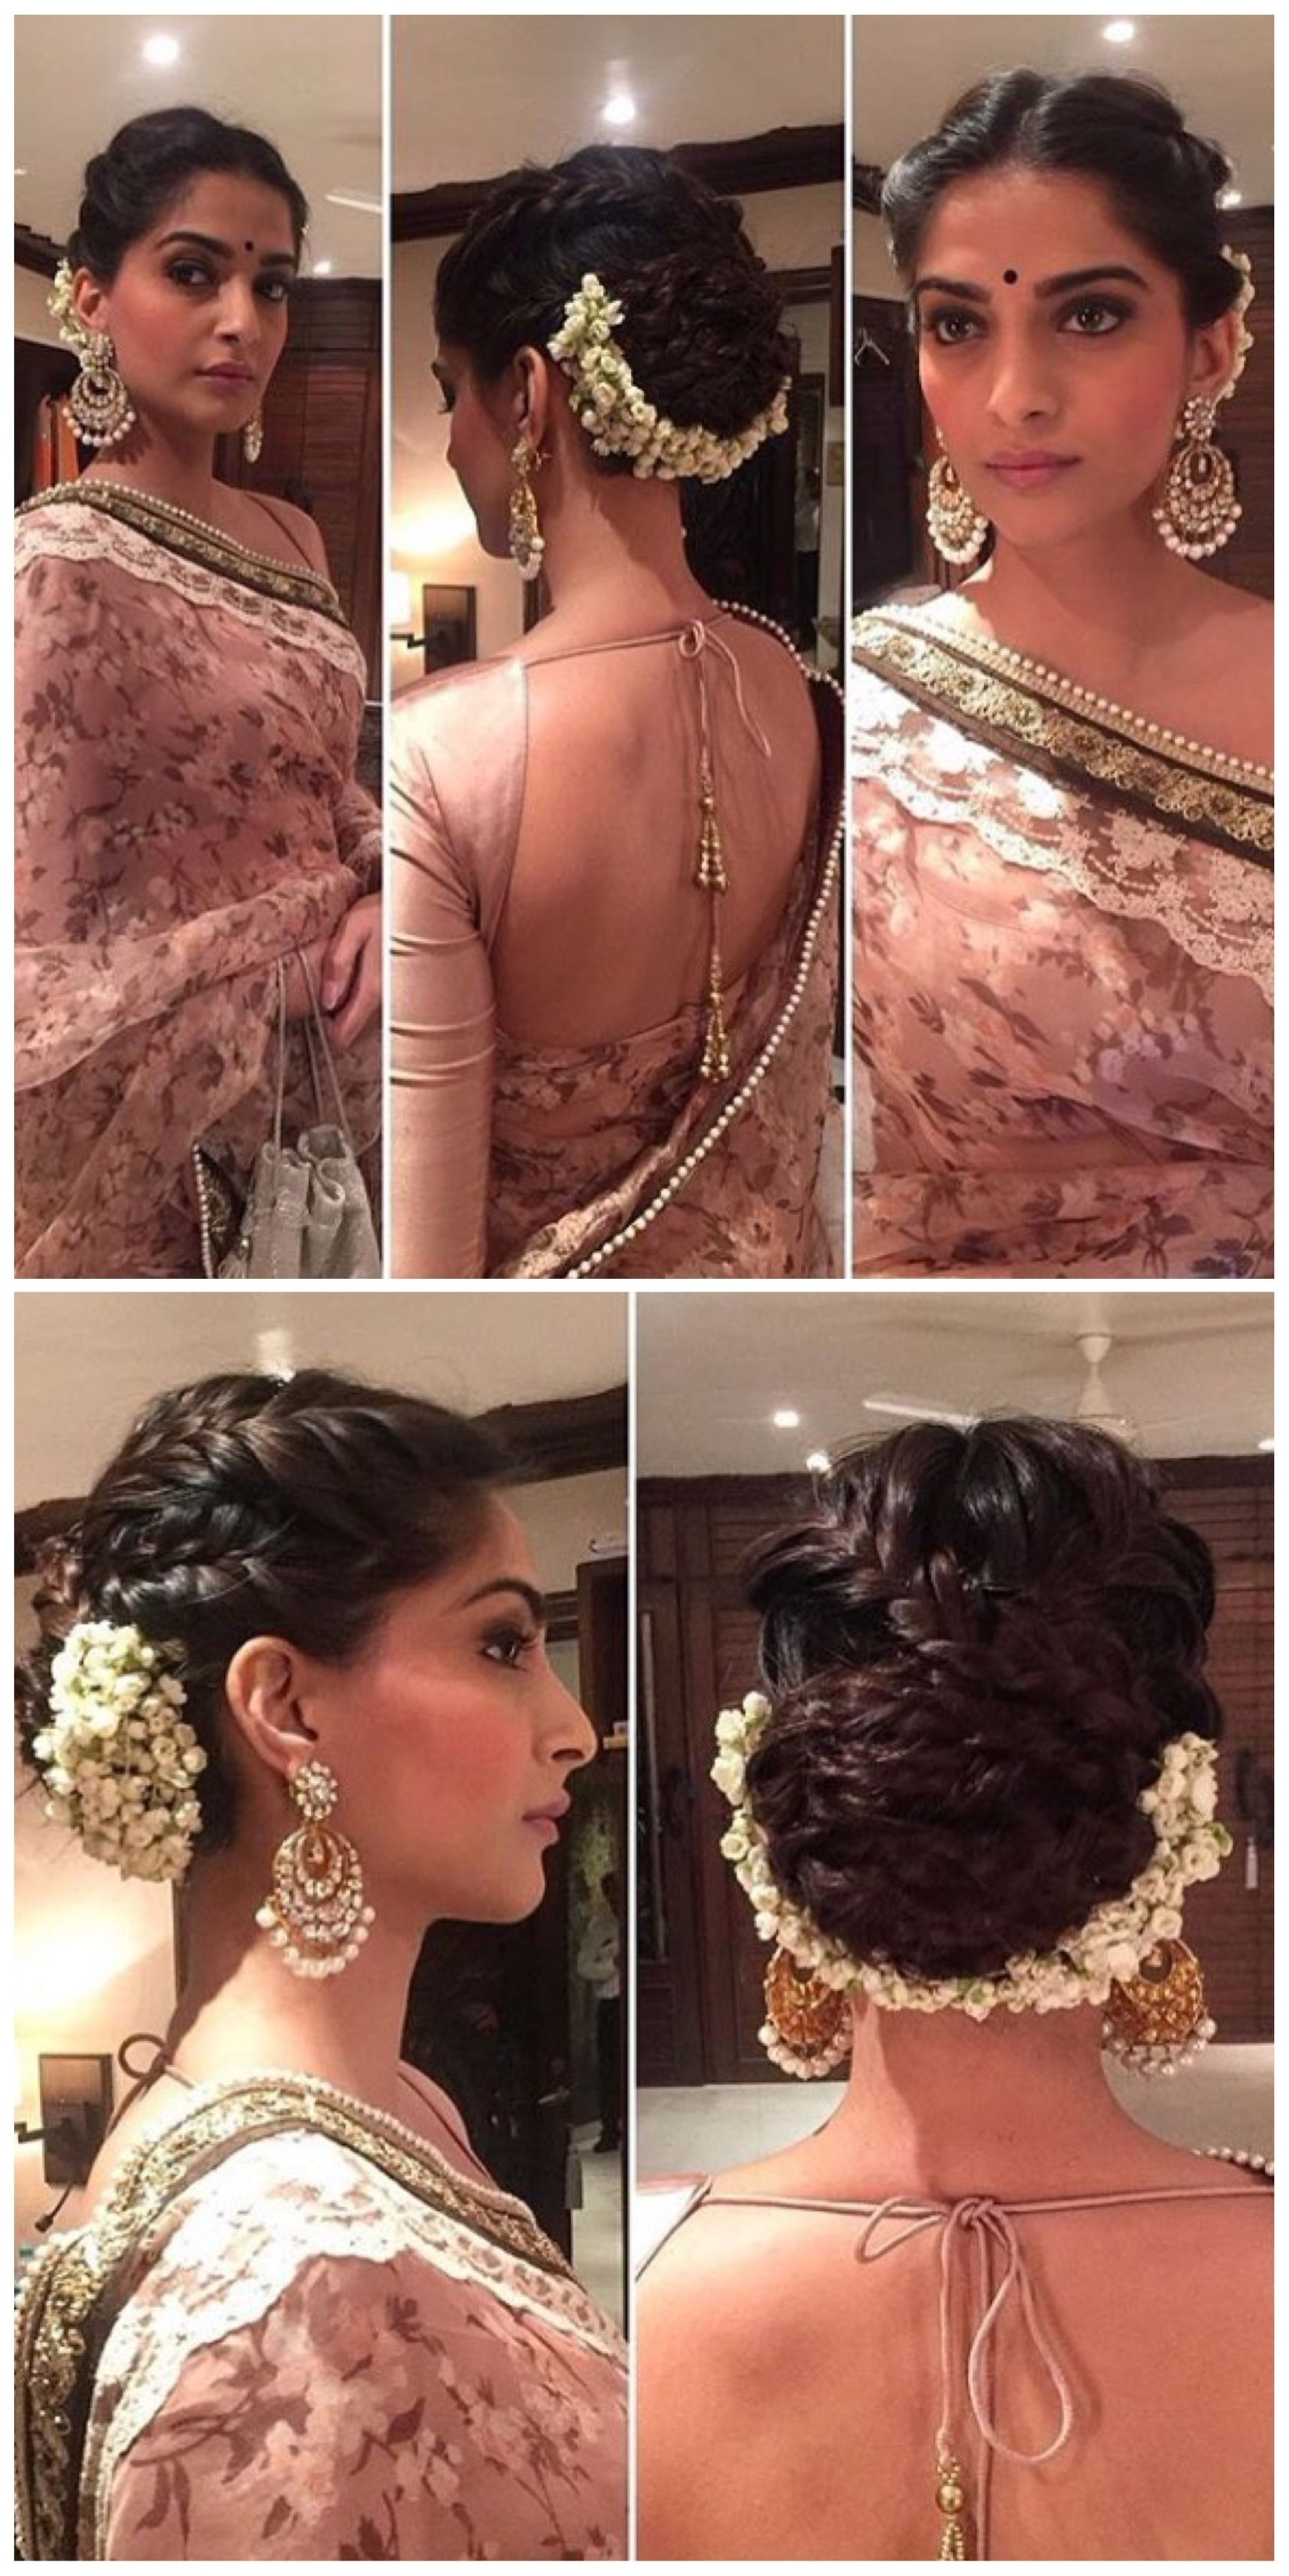 Sonam Kapoor's Hairstyle Is On Fleek For A Wedding (View 10 of 15)